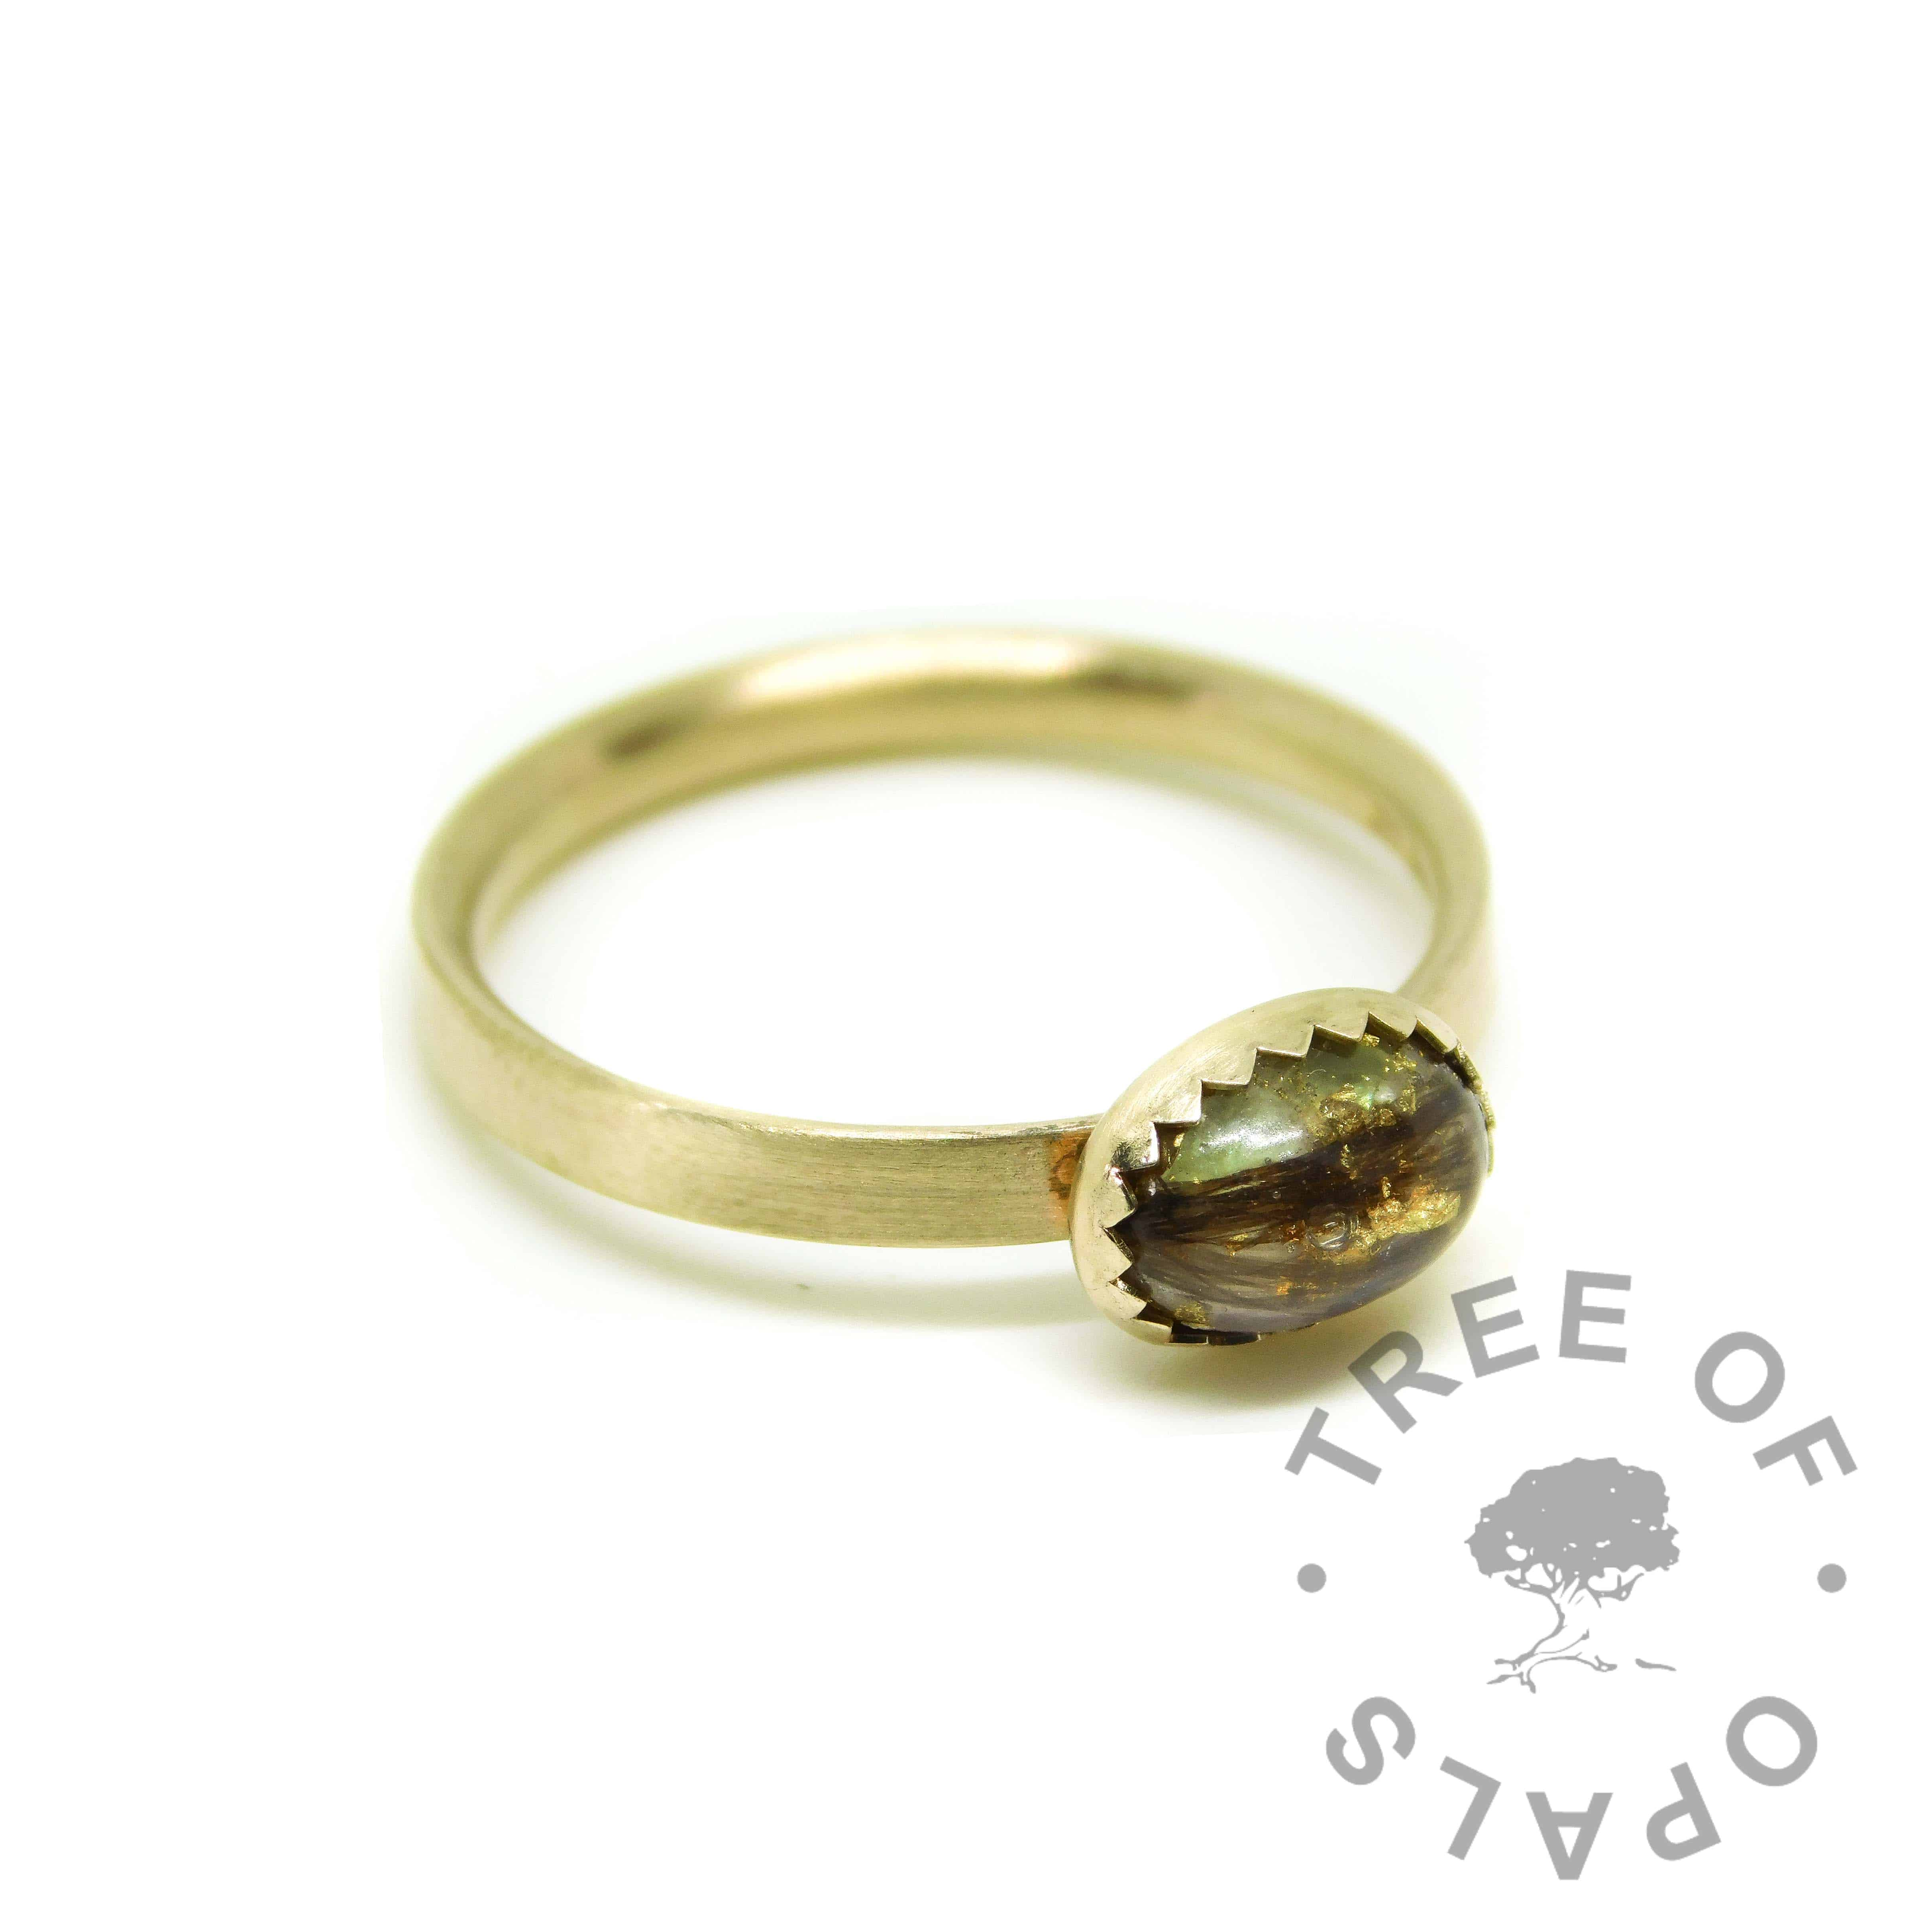 Solid gold lock of hair ring with unicorn white resin sparkle mix and August birthstone rough natural peridot, and gold leaf. Brushed band gold ring solid 14ct gold with serrated setting